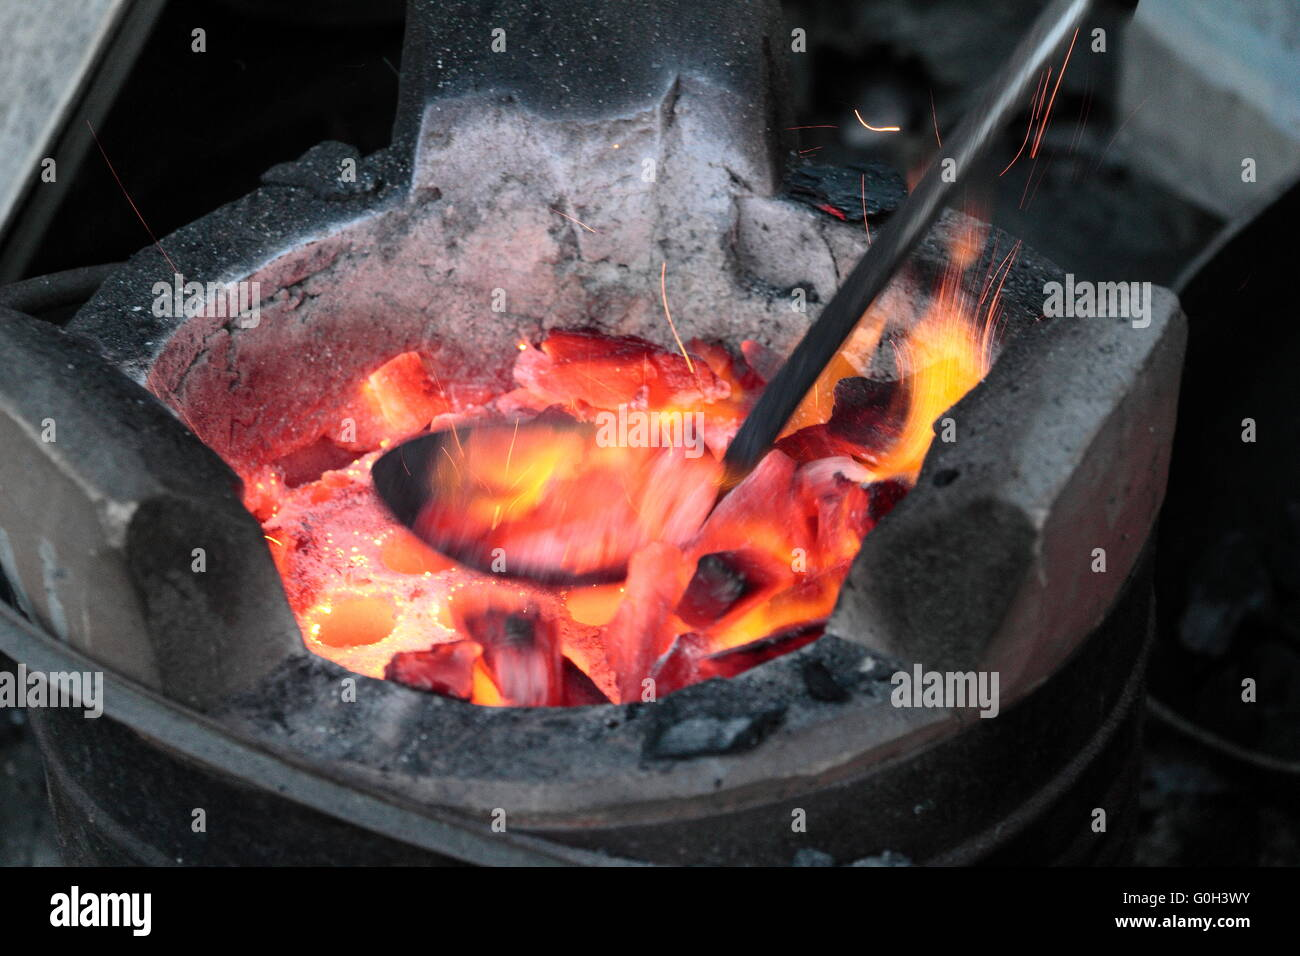 Thai cooking stove tool used for a long time - Stock Image